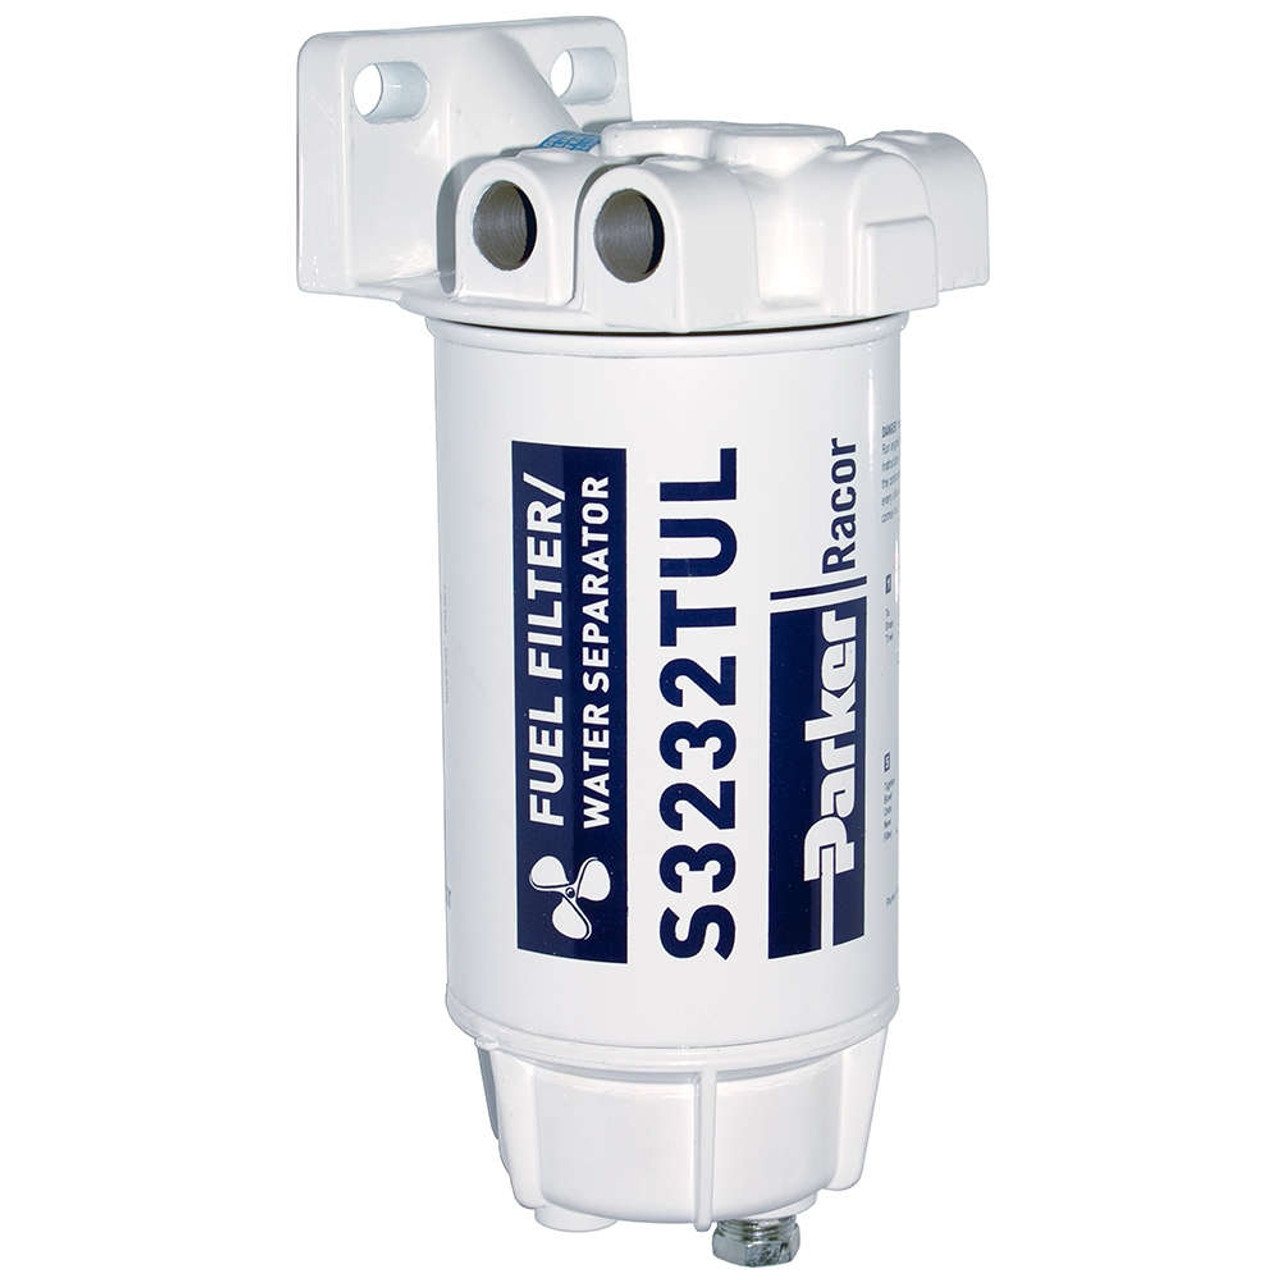 Racor Aquabloc Marine 3/8 in. 90 GPH Spin-On Gasoline Filter Assembly